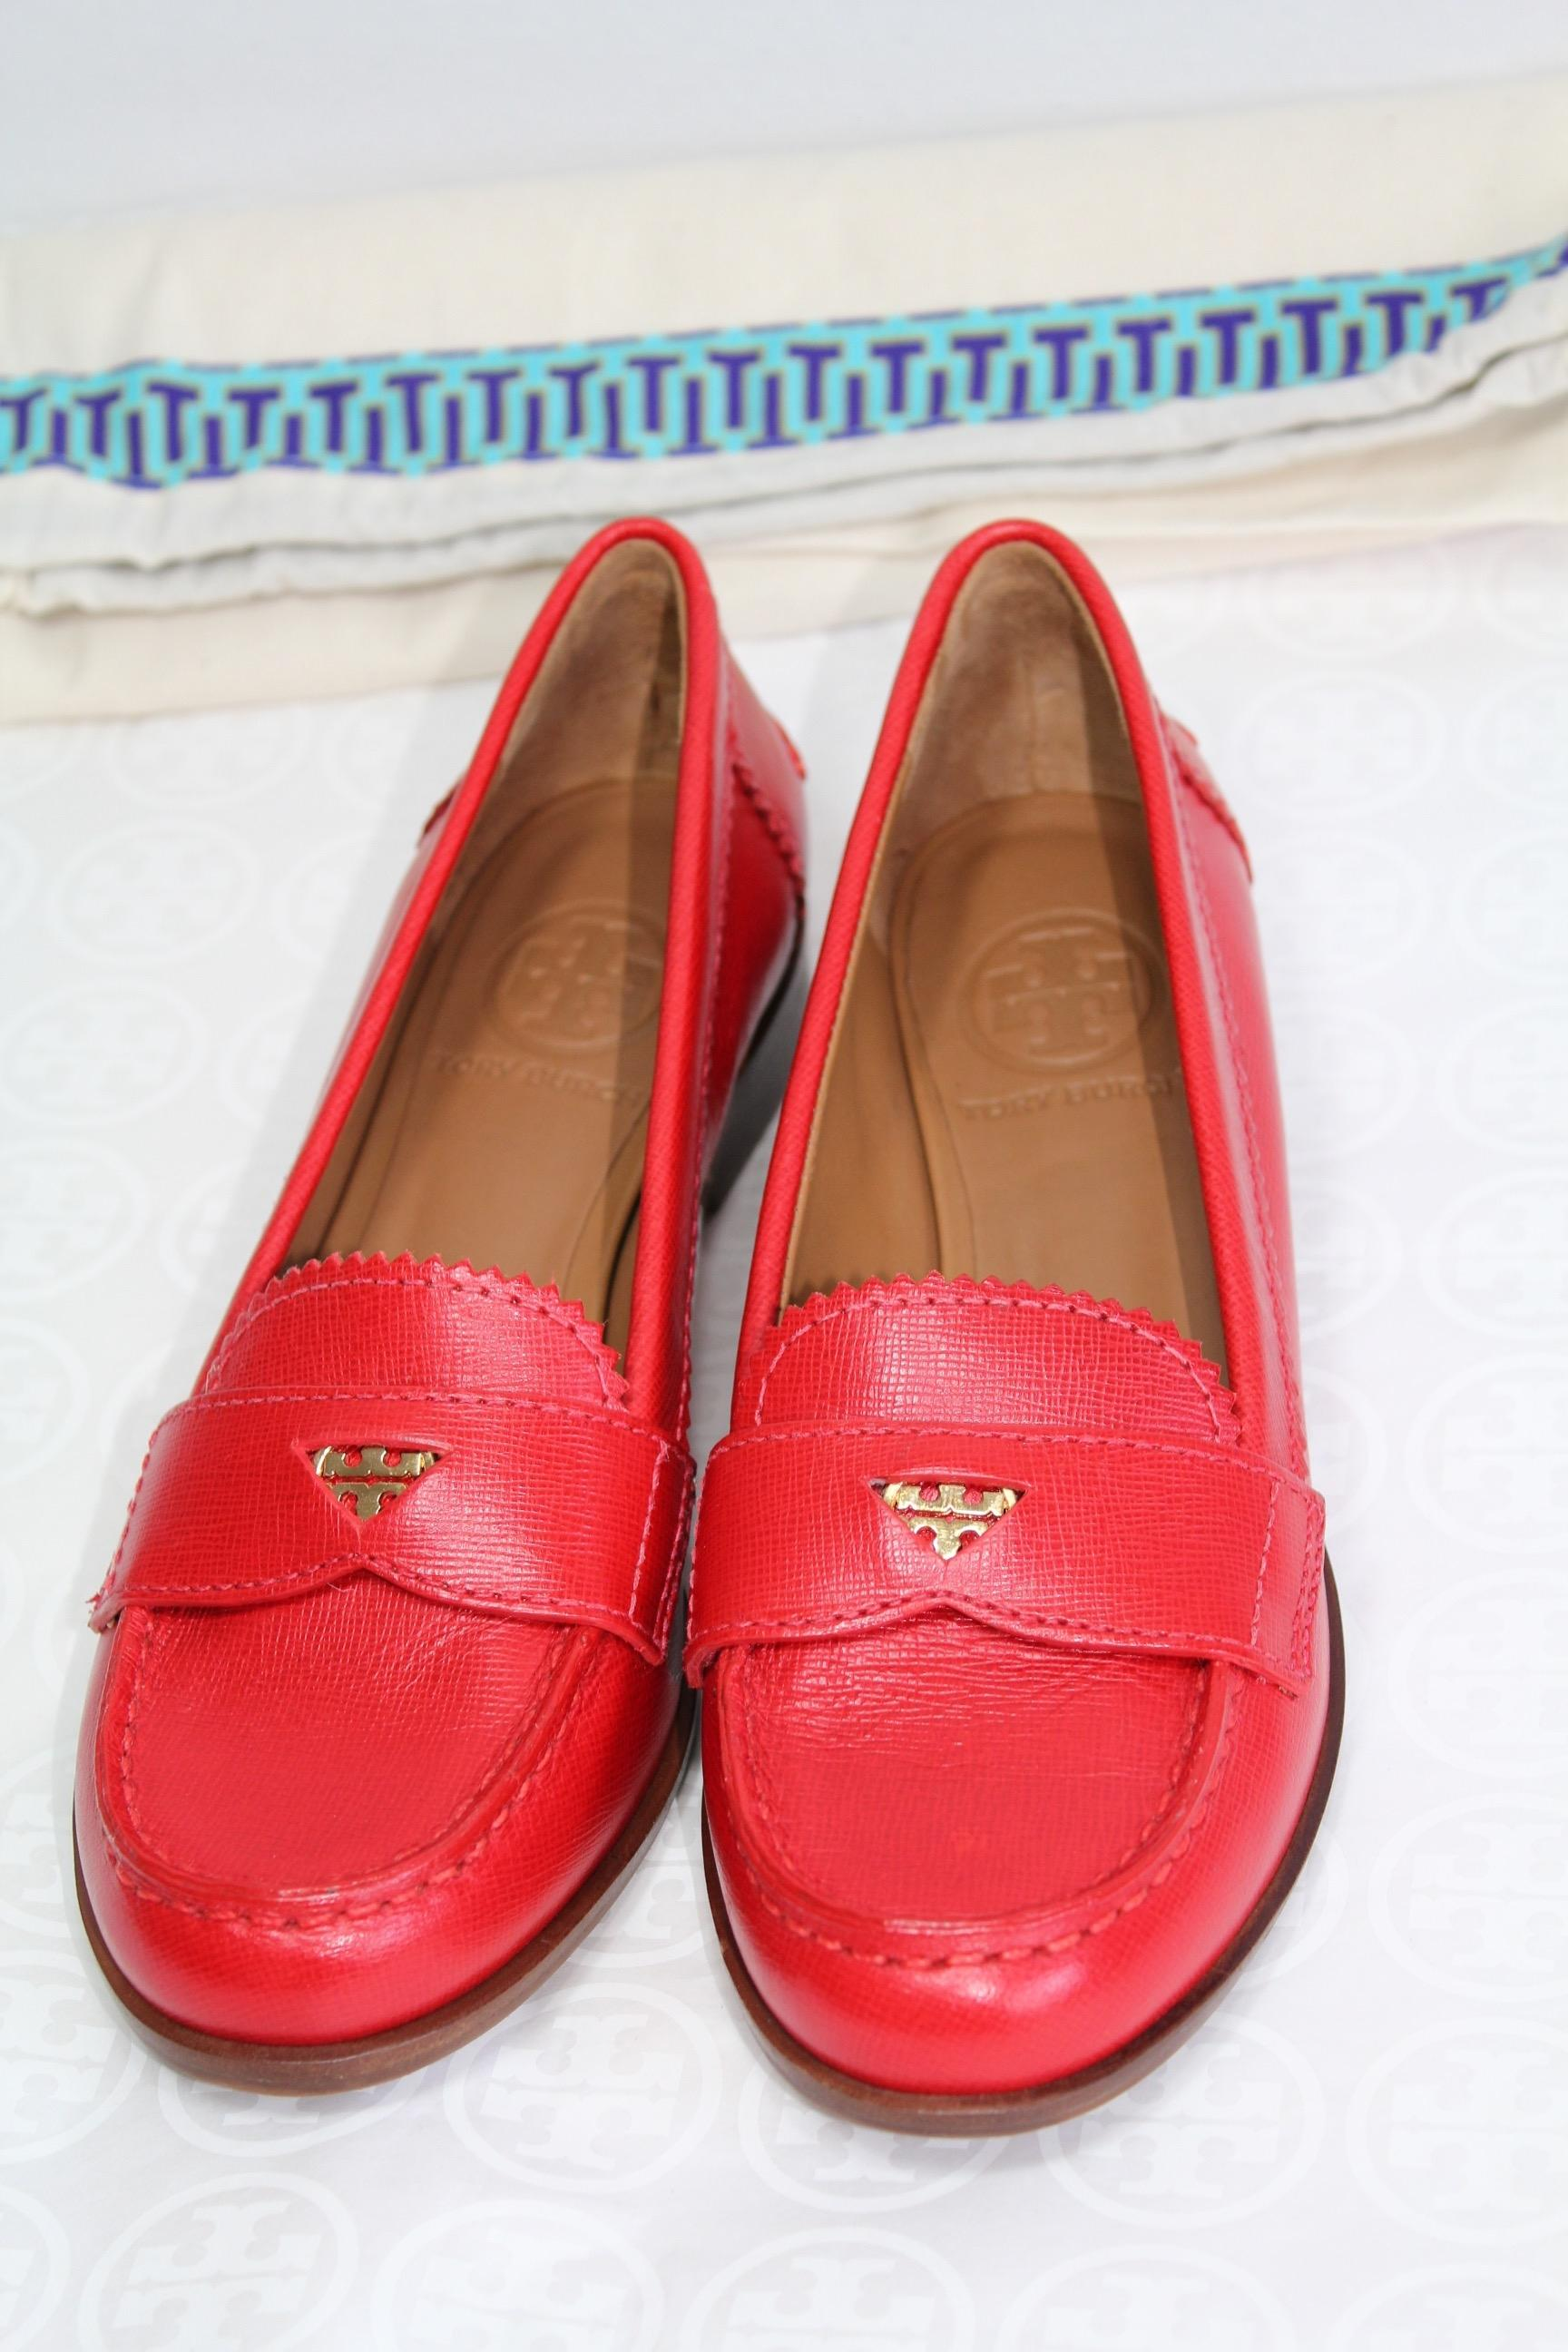 Tory Burch Red Leather Penny Loafers Flats Size US 6 Regular (M, B) -  Tradesy